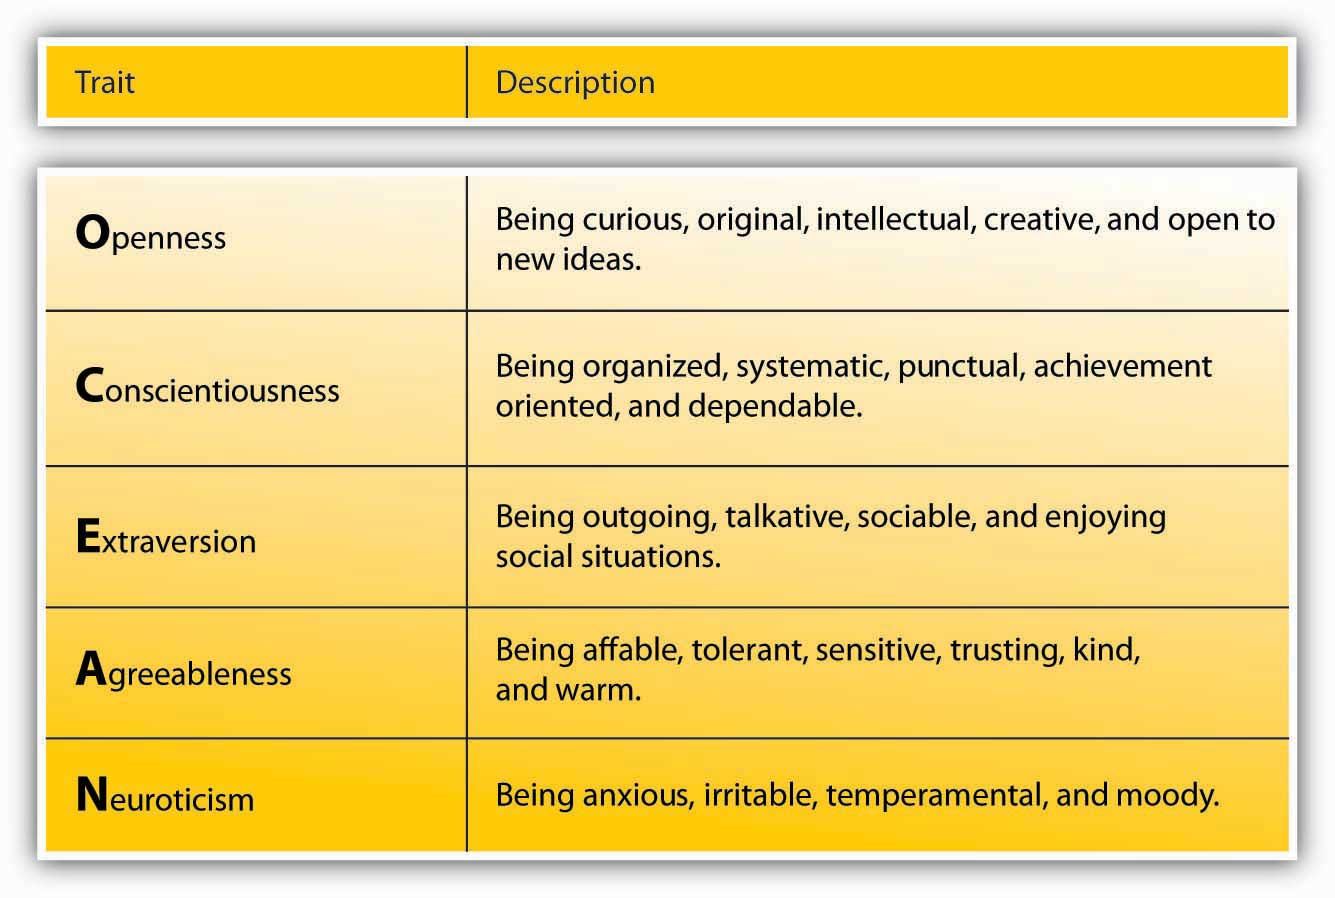 Theory of personality in organizational behavior